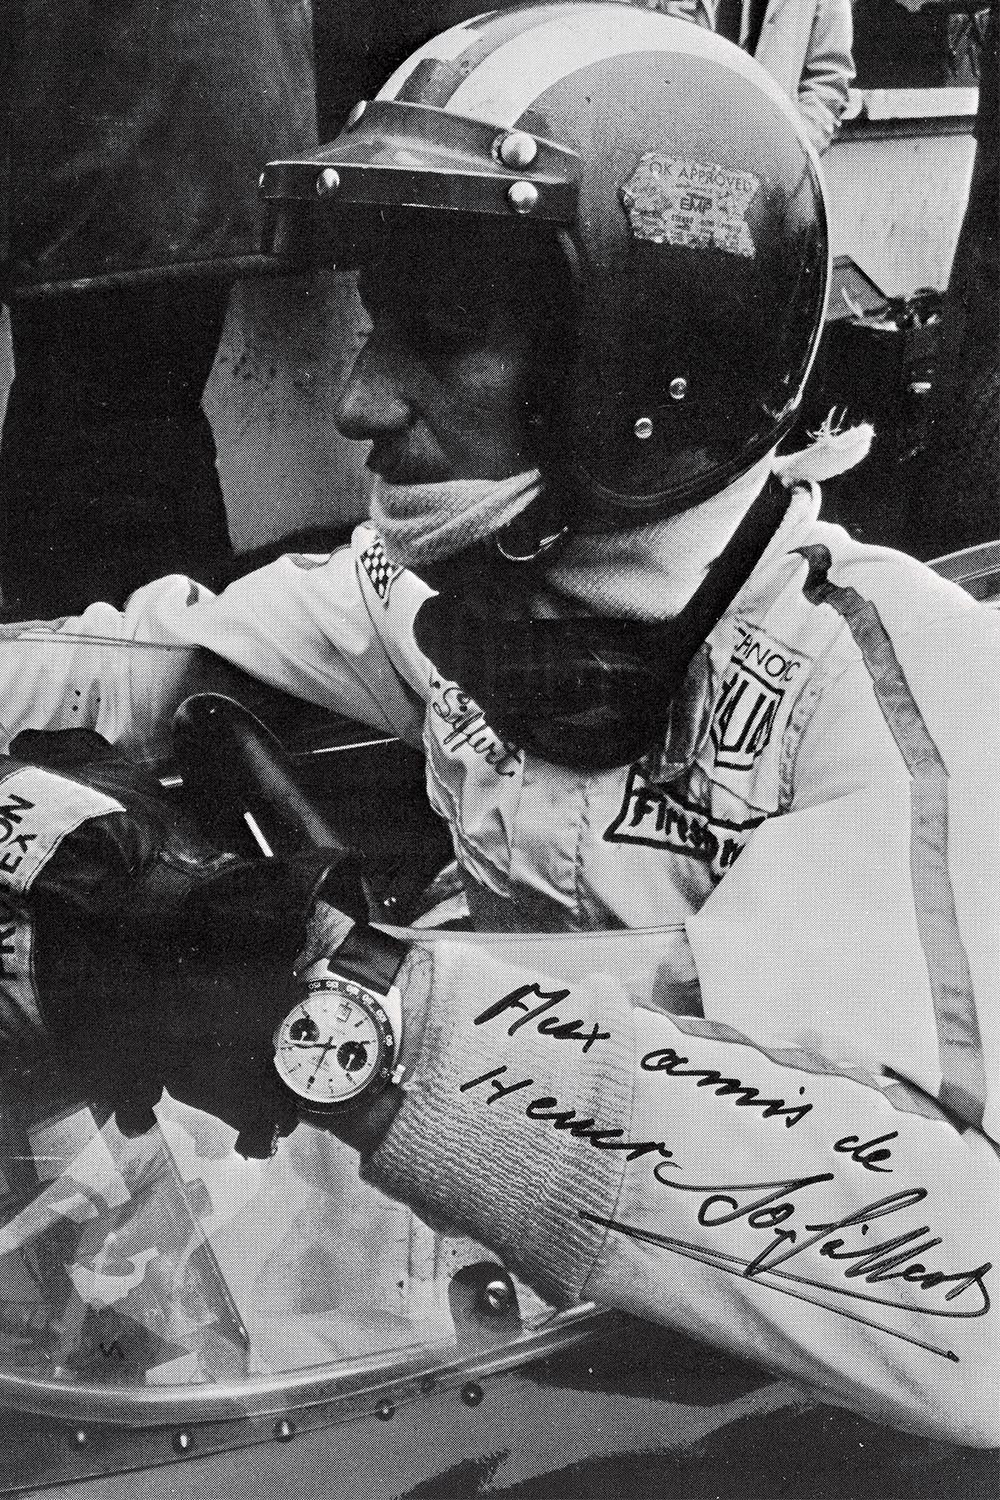 Jo Siffert wearing his Heuer Autavia 1163T